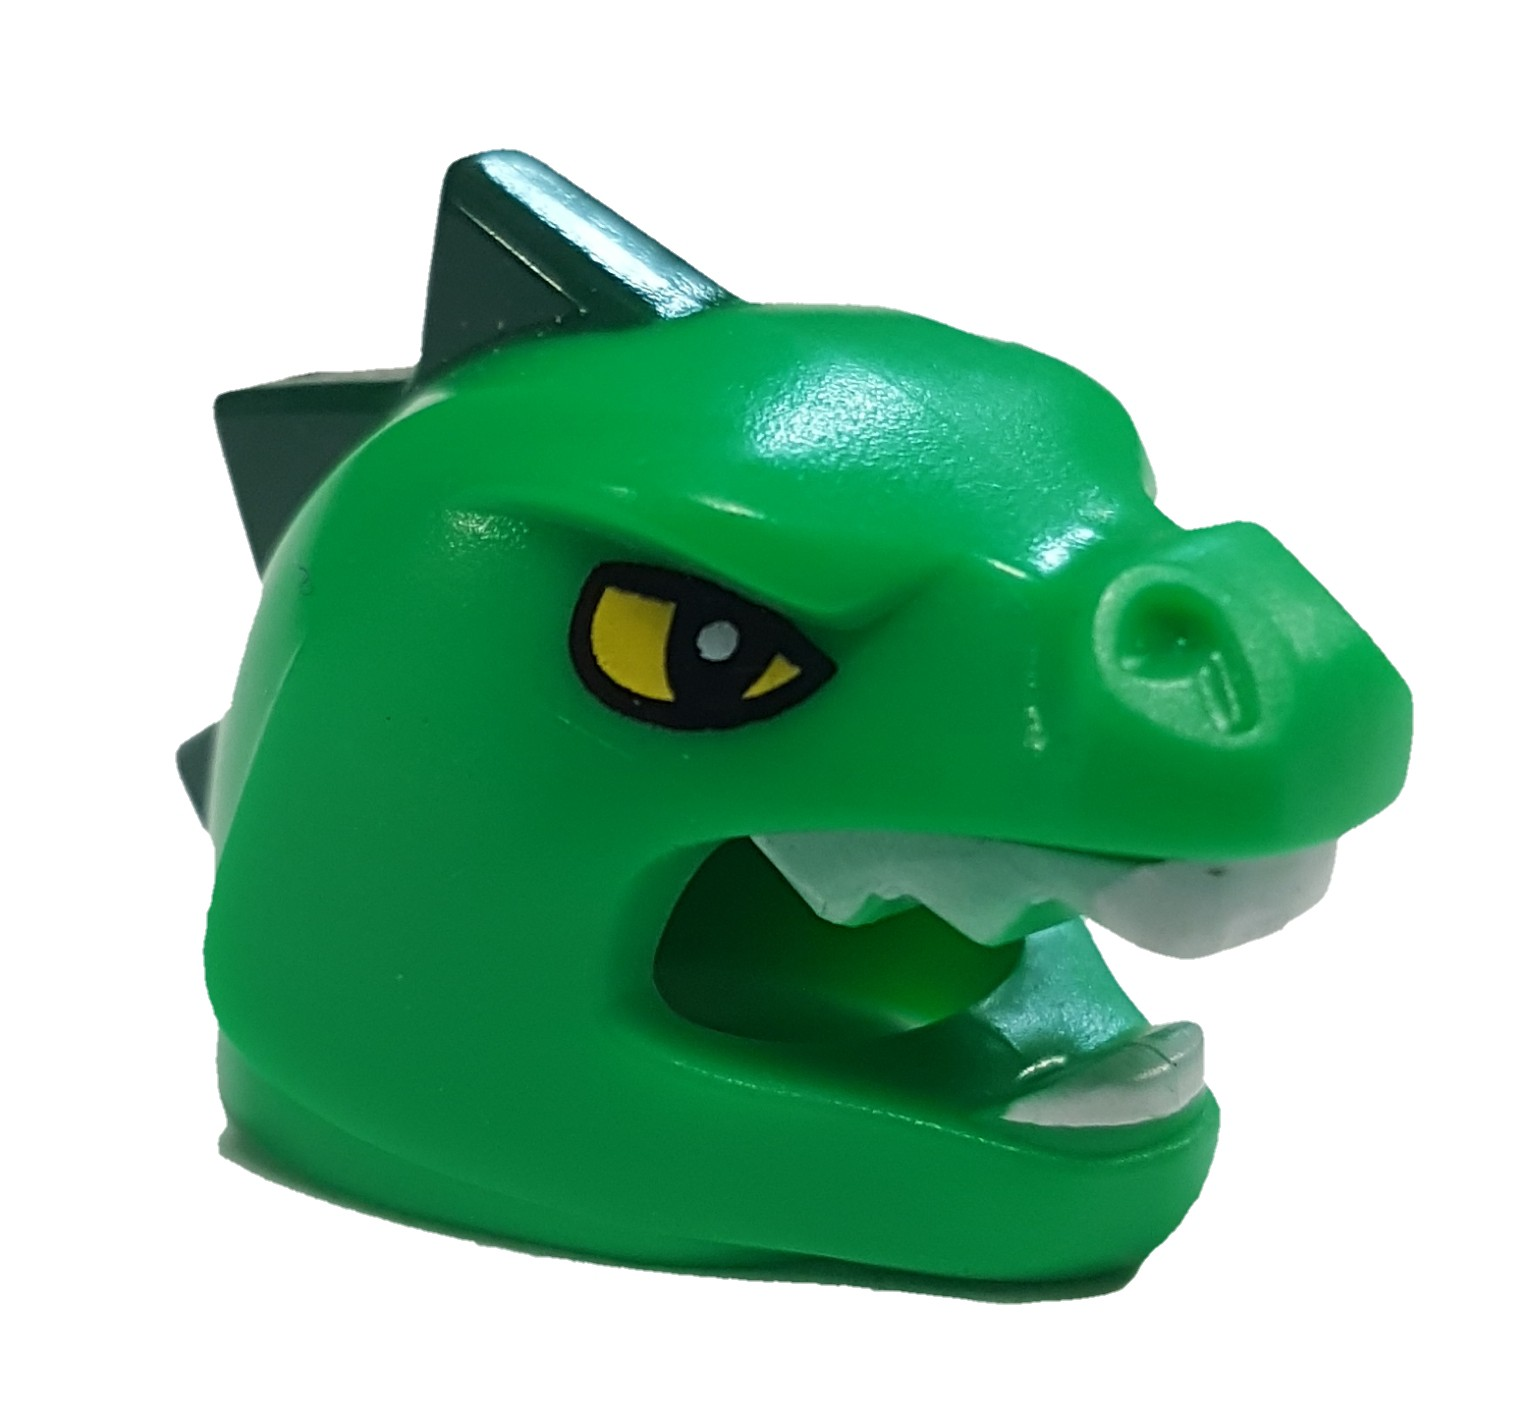 LEGO Green Lizard Mask with Yellow Eyes Loose Accessory